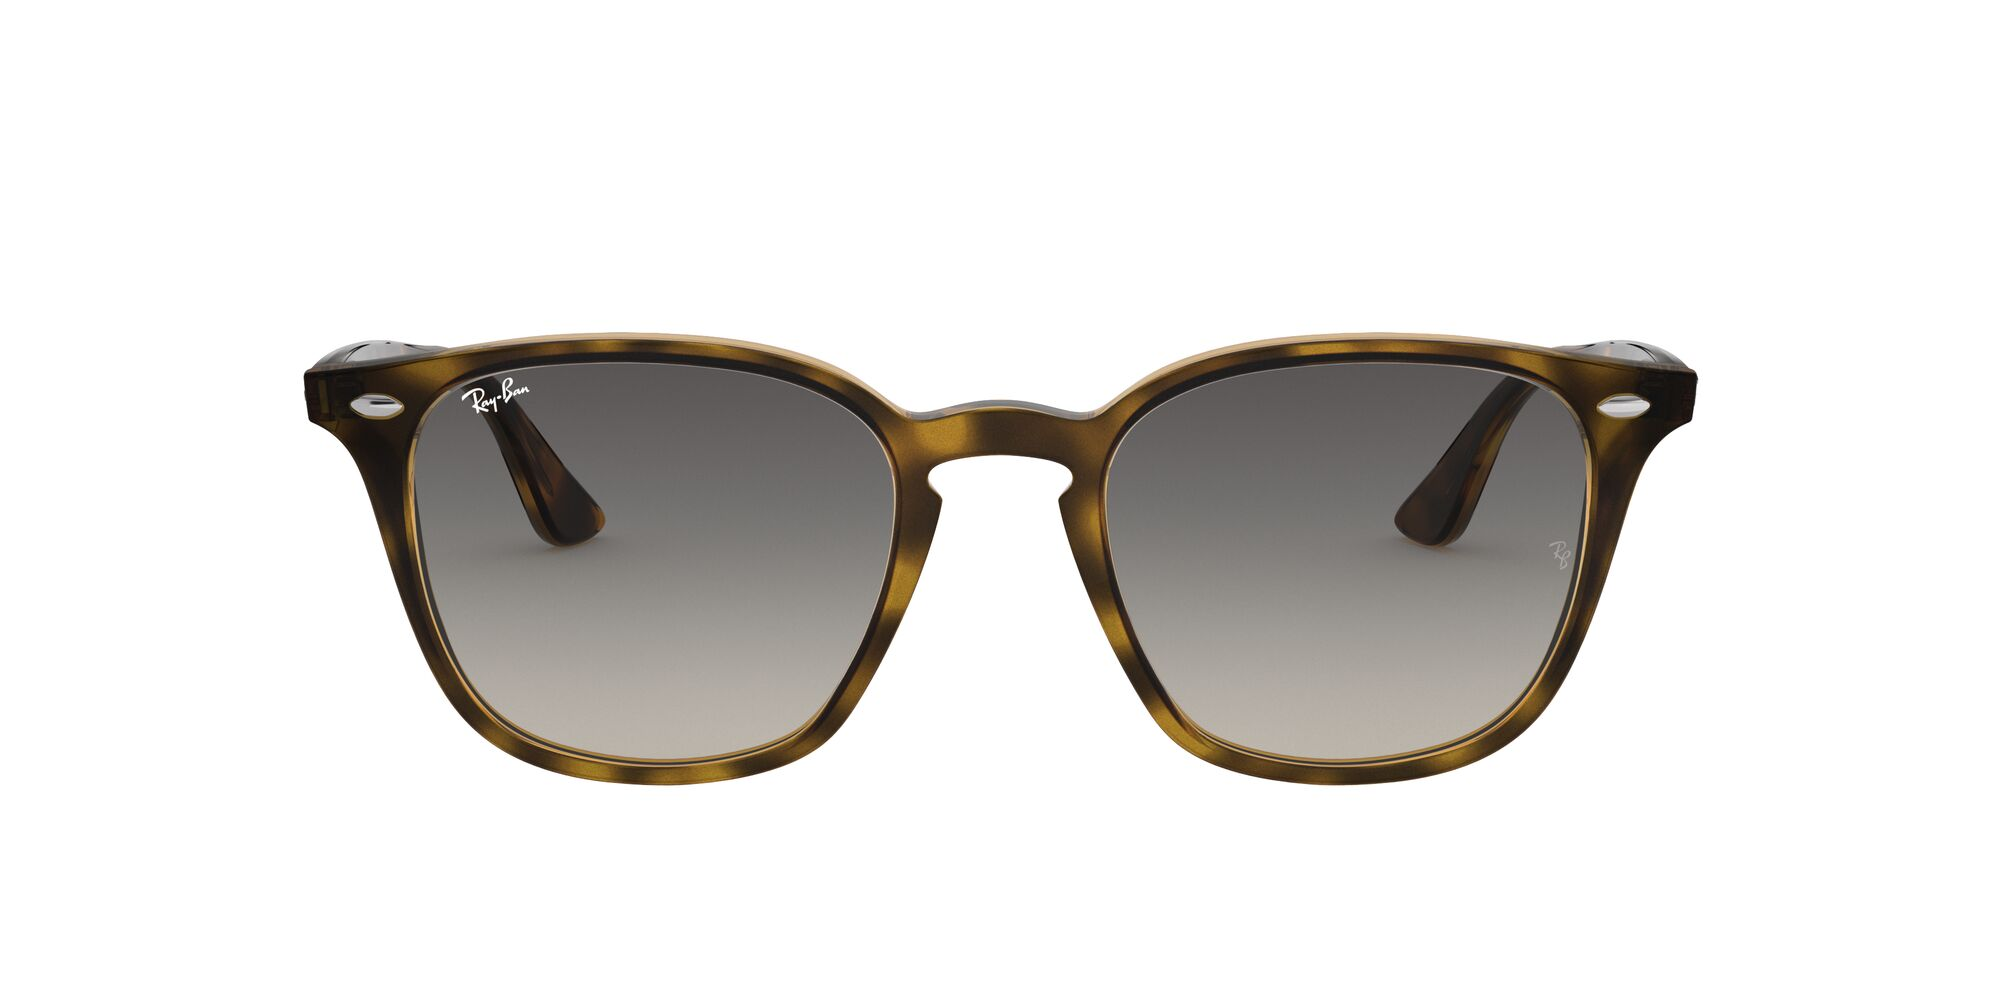 Front Ray-Ban Ray-Ban 0RB4258 710/11 50/20 Zilver, Bruin/Grijs